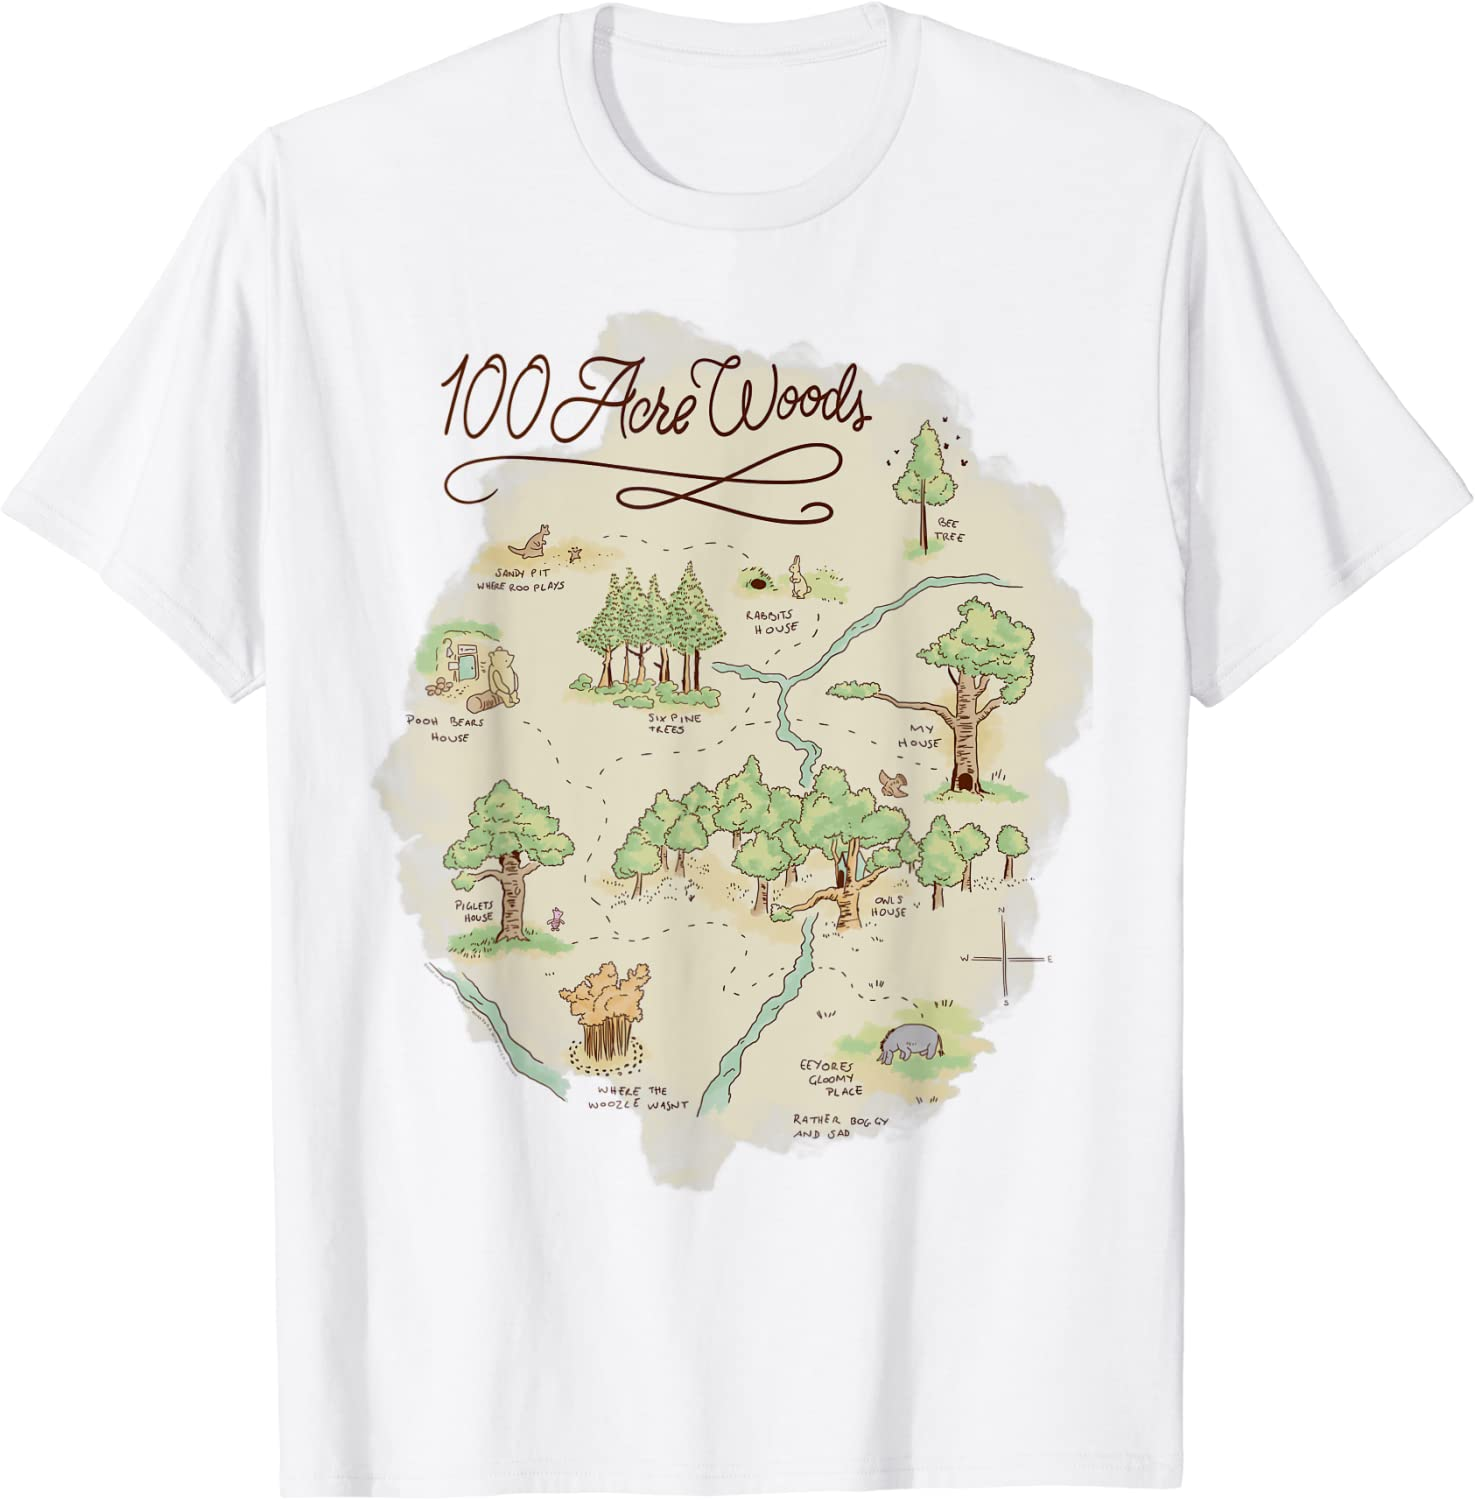 Disney Winnie The Pooh 100 Acre Woods Map T-Shirt : Clothing, Shoes & Jewelry